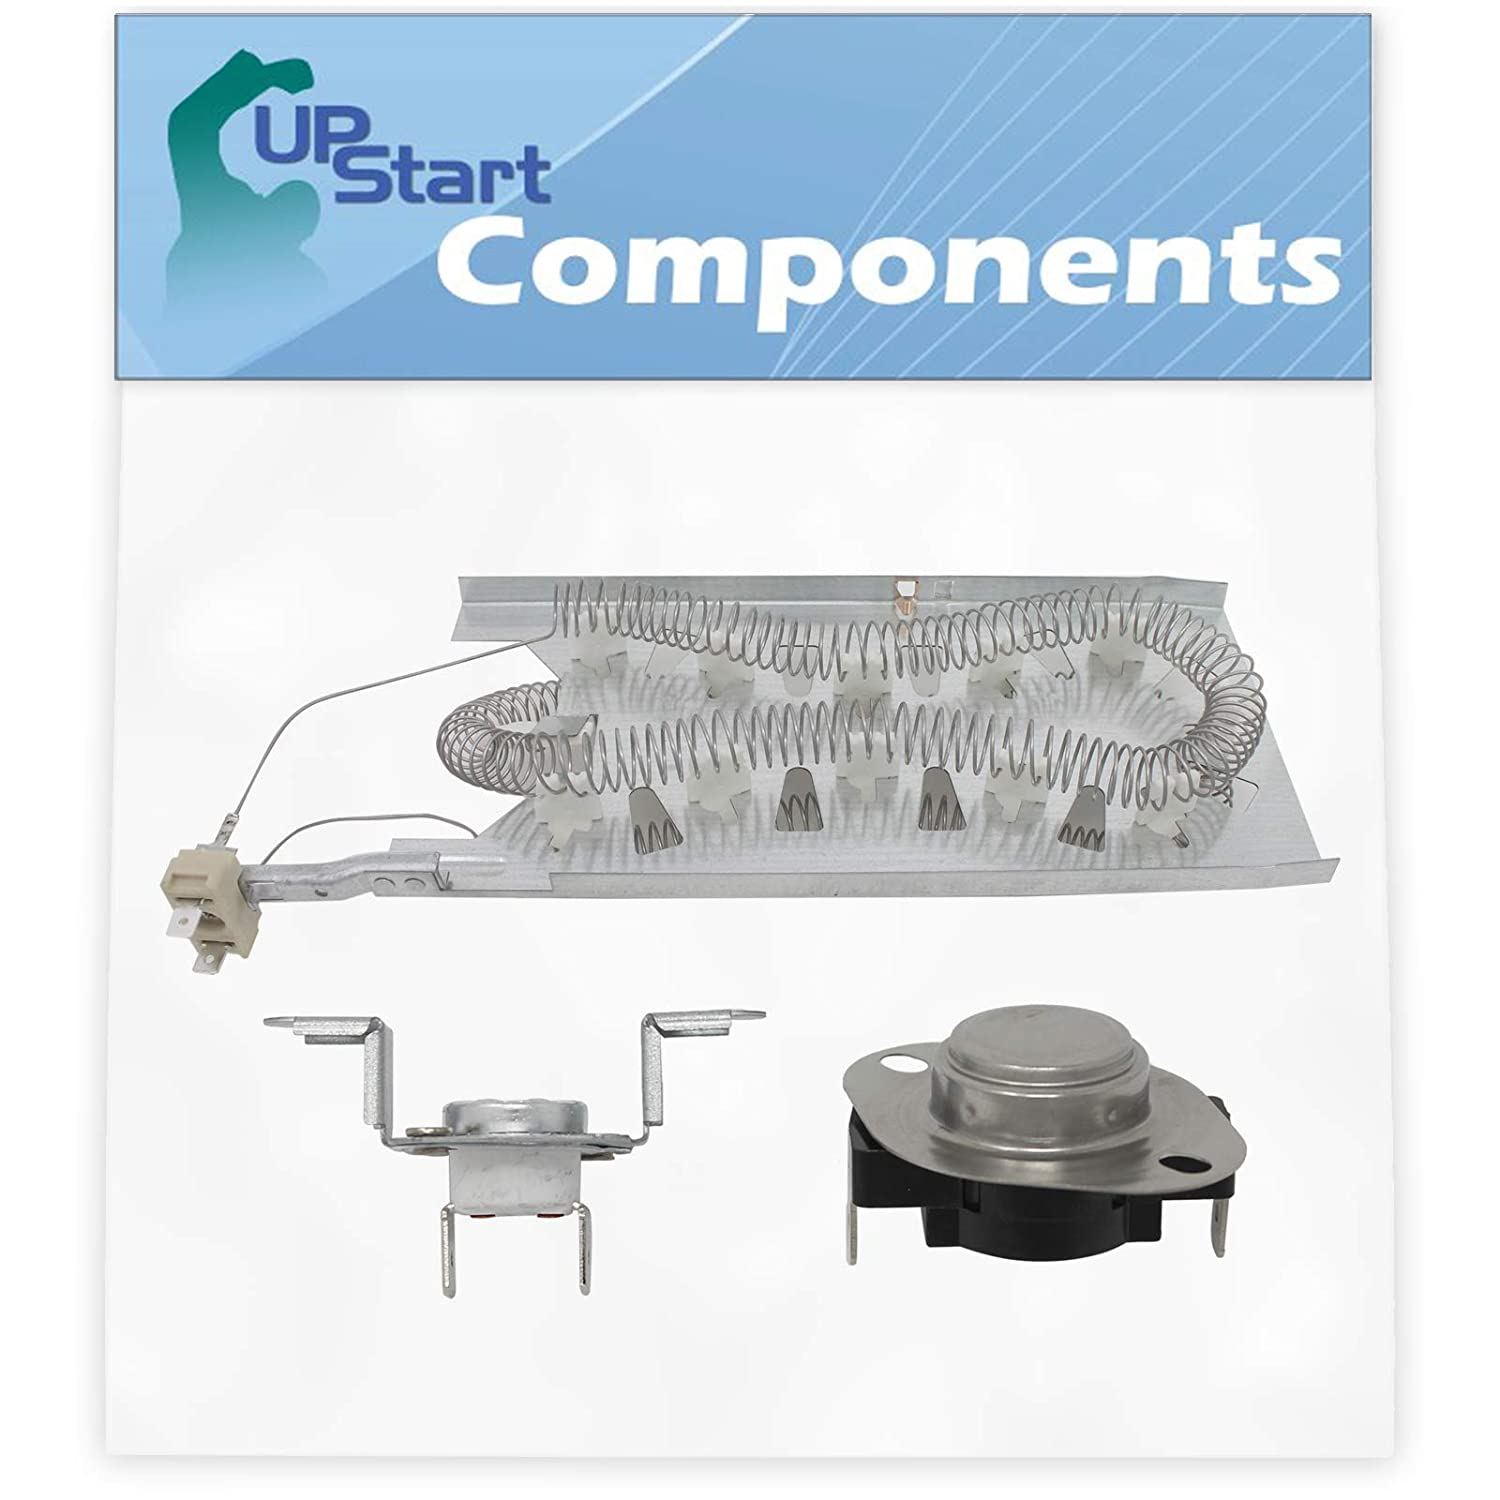 3387747 Dryer Heating Element & 279973 Thermal Cut-Off Fuse Kit Replacement for Whirlpool GEW9250PW1 Dryer - Compatible with WP3387747 & 8318314 Heater Element & Thermal Fuse Kit